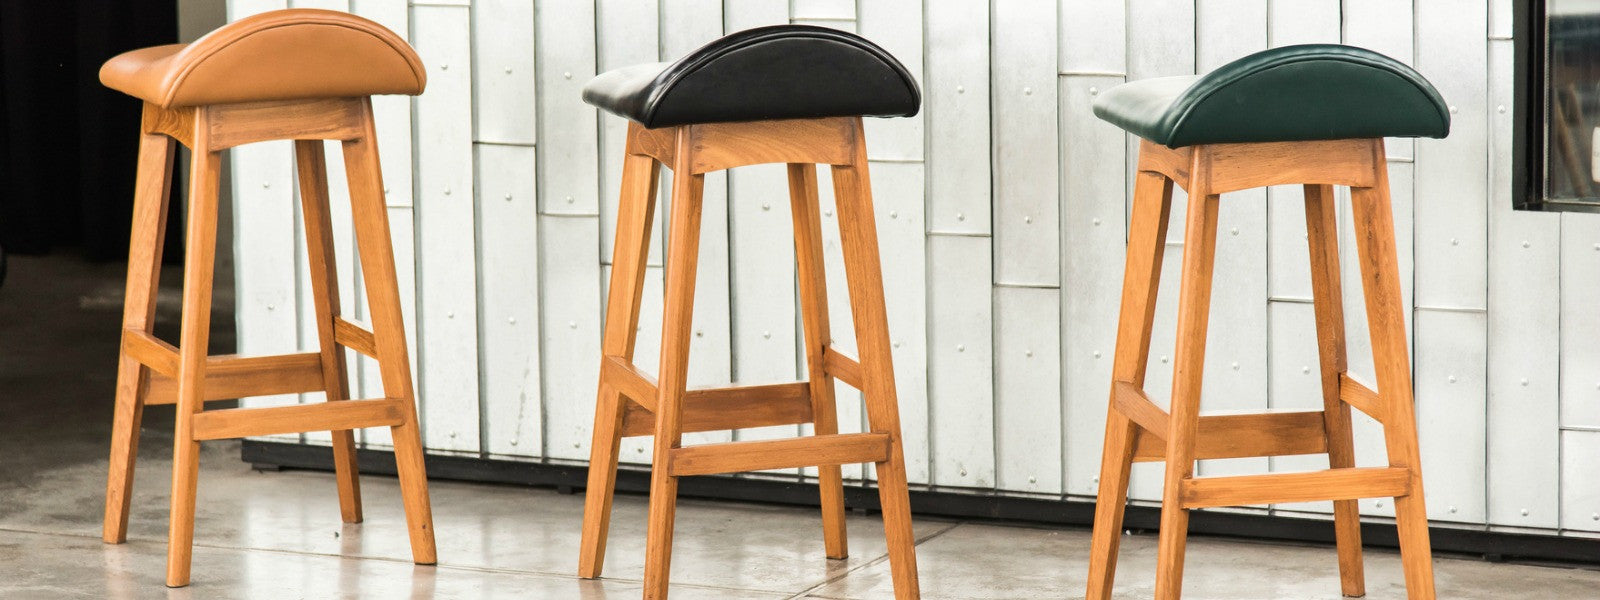 Awesome Simply Bar Stools Australian Online Store For Bar And Evergreenethics Interior Chair Design Evergreenethicsorg